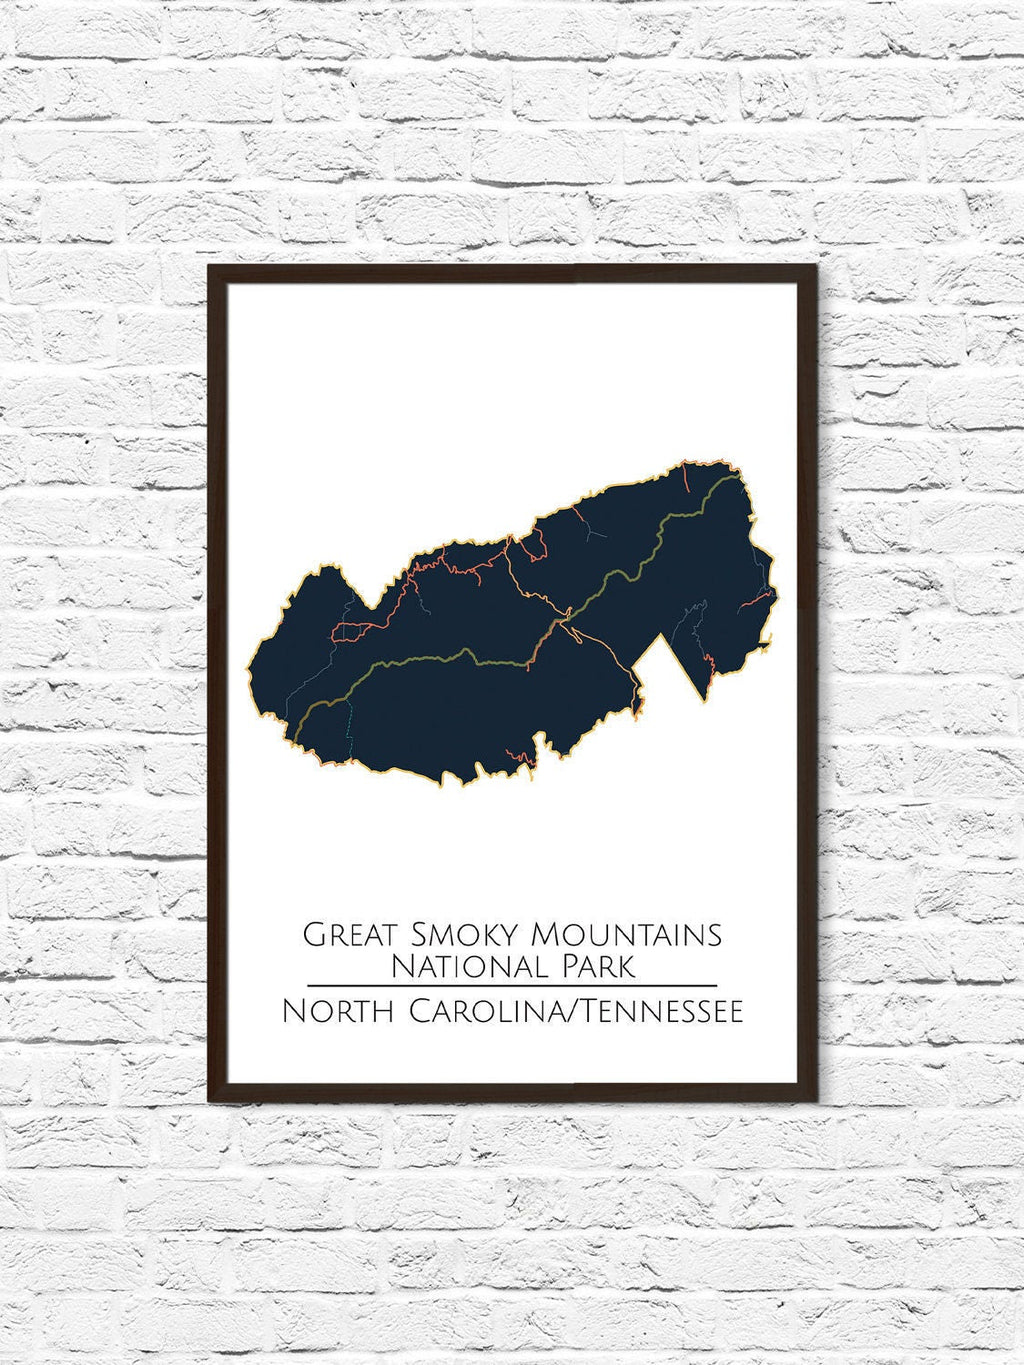 Smoky Mountains National Park, National Park Map, National Parks Poster, National Park Print, Minimalist Art, Home Office Decor - ParMar Media